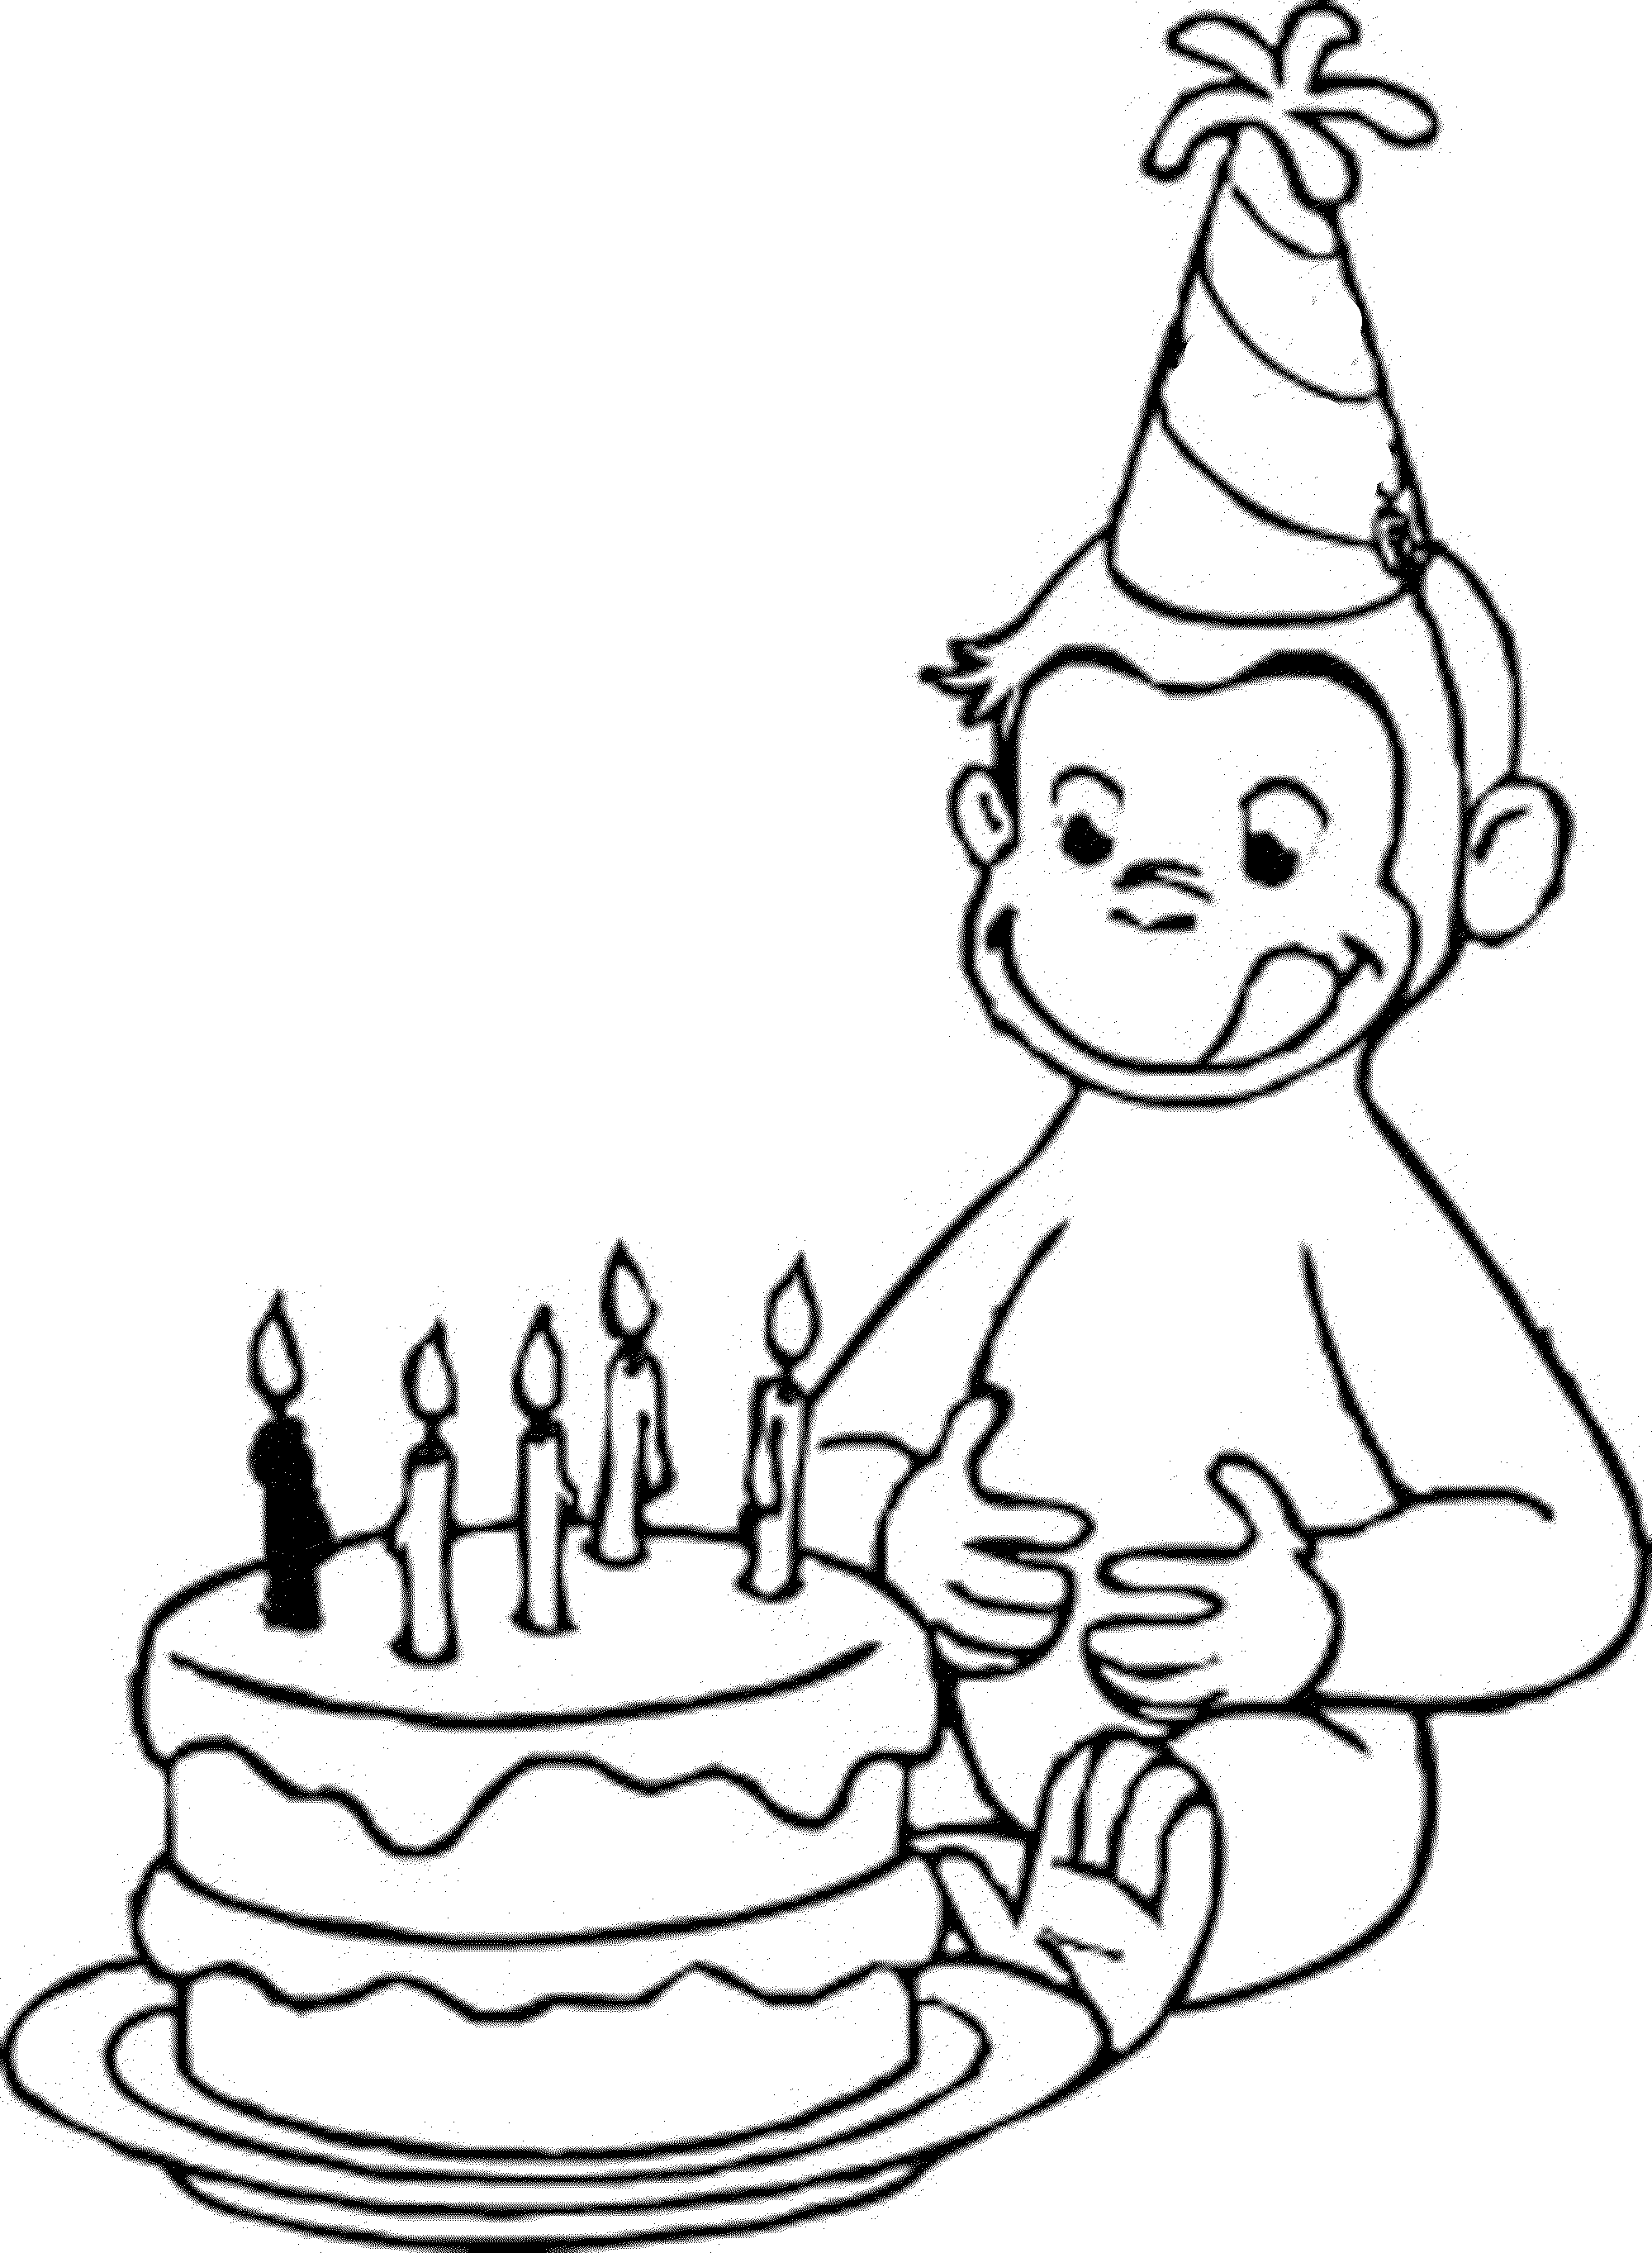 printable colouring birthday pictures free printable birthday cake coloring pages for kids colouring birthday pictures printable